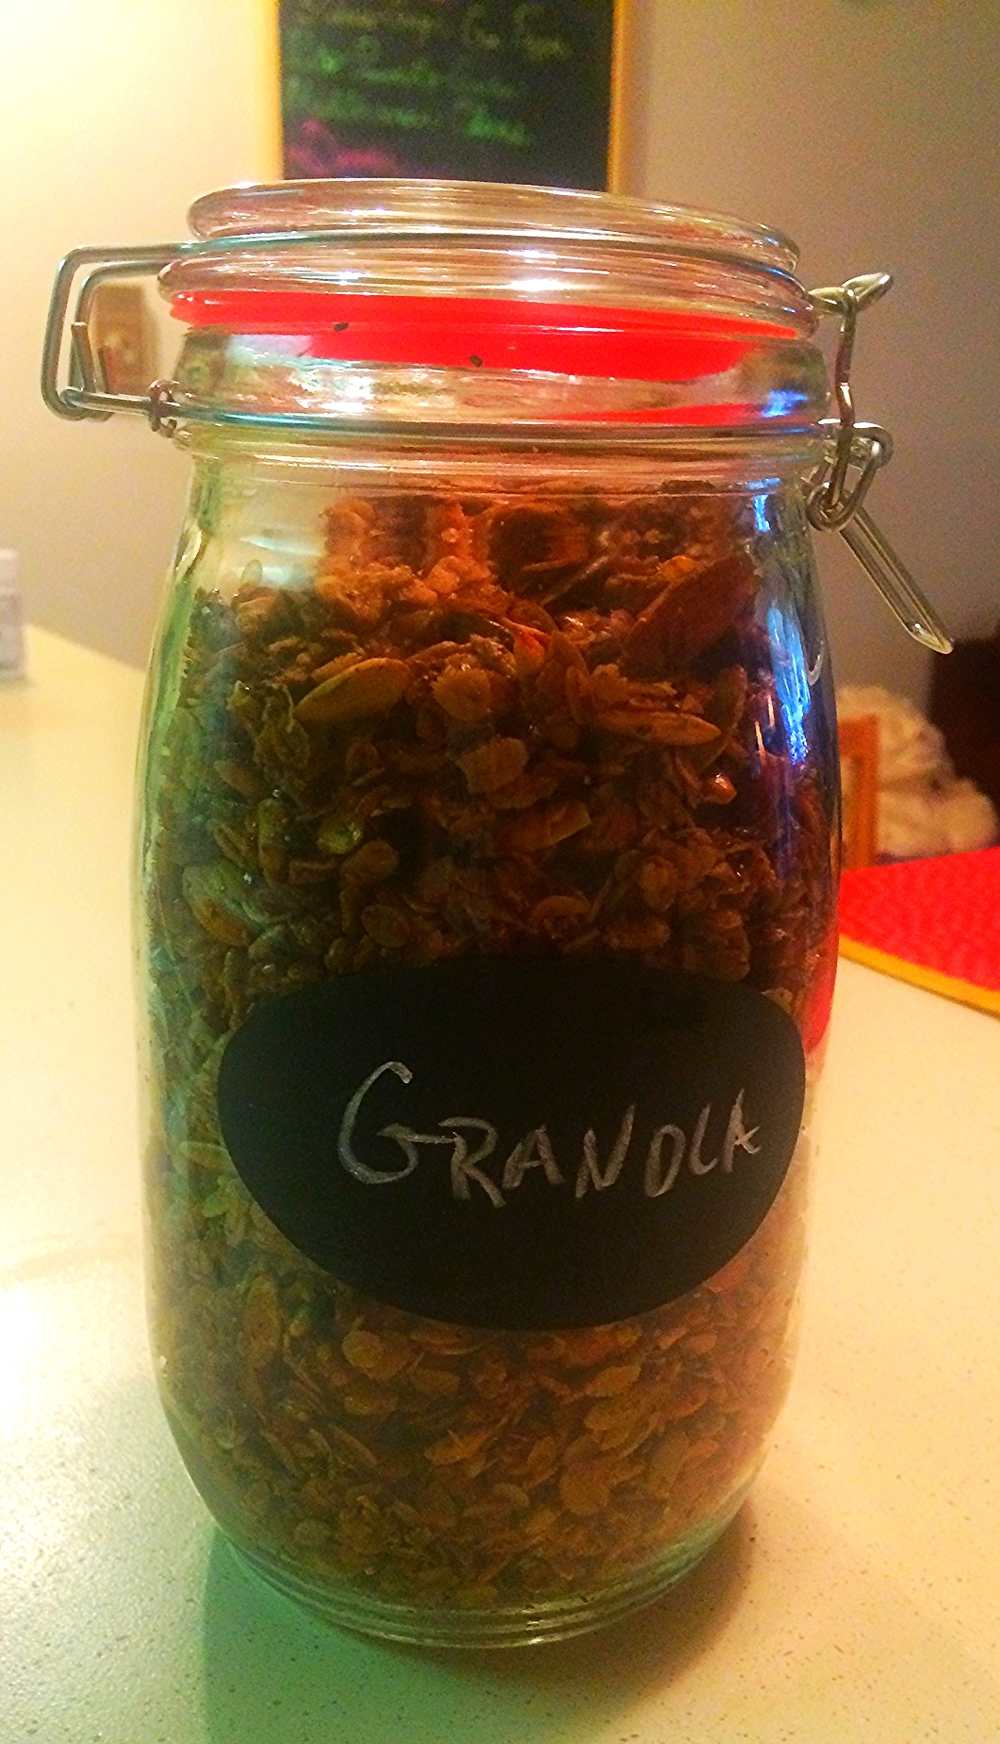 Granola fresh from the oven, cooled, and ready for pantry storage.